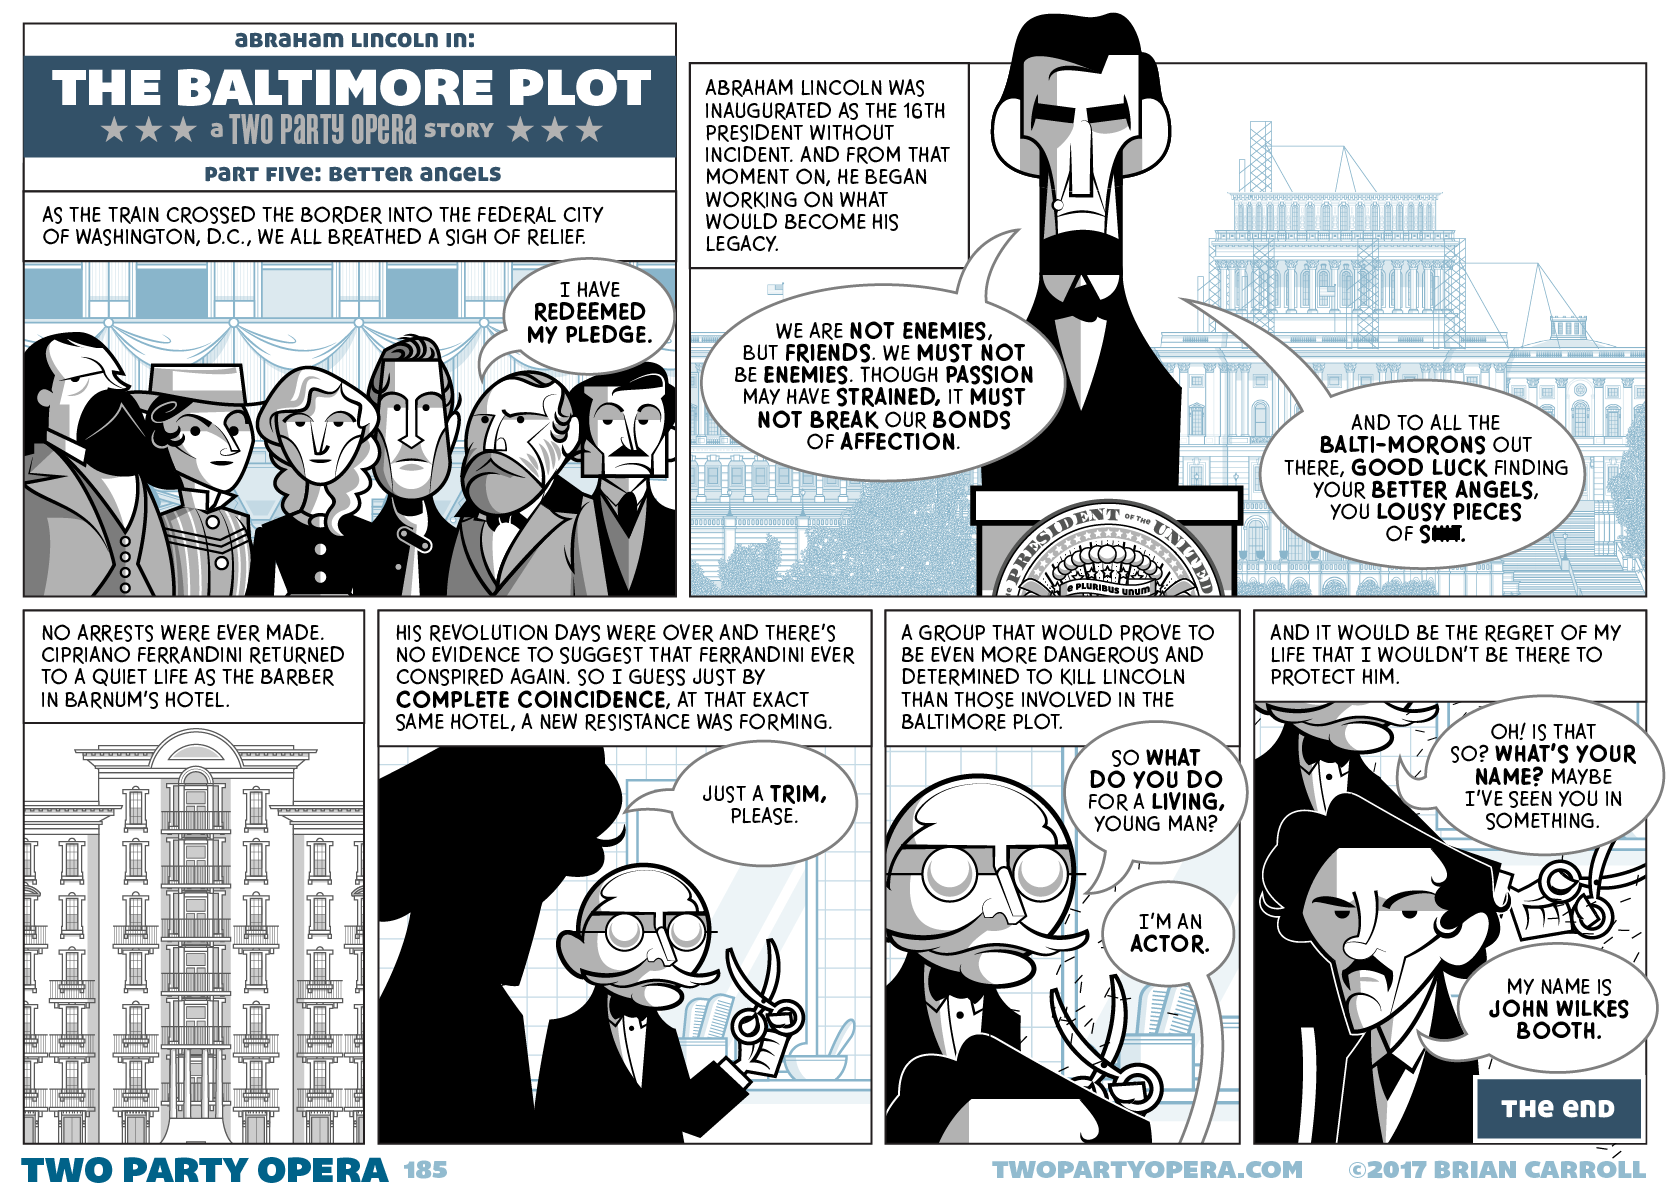 The Baltimore Plot – Part Five: Better Angels